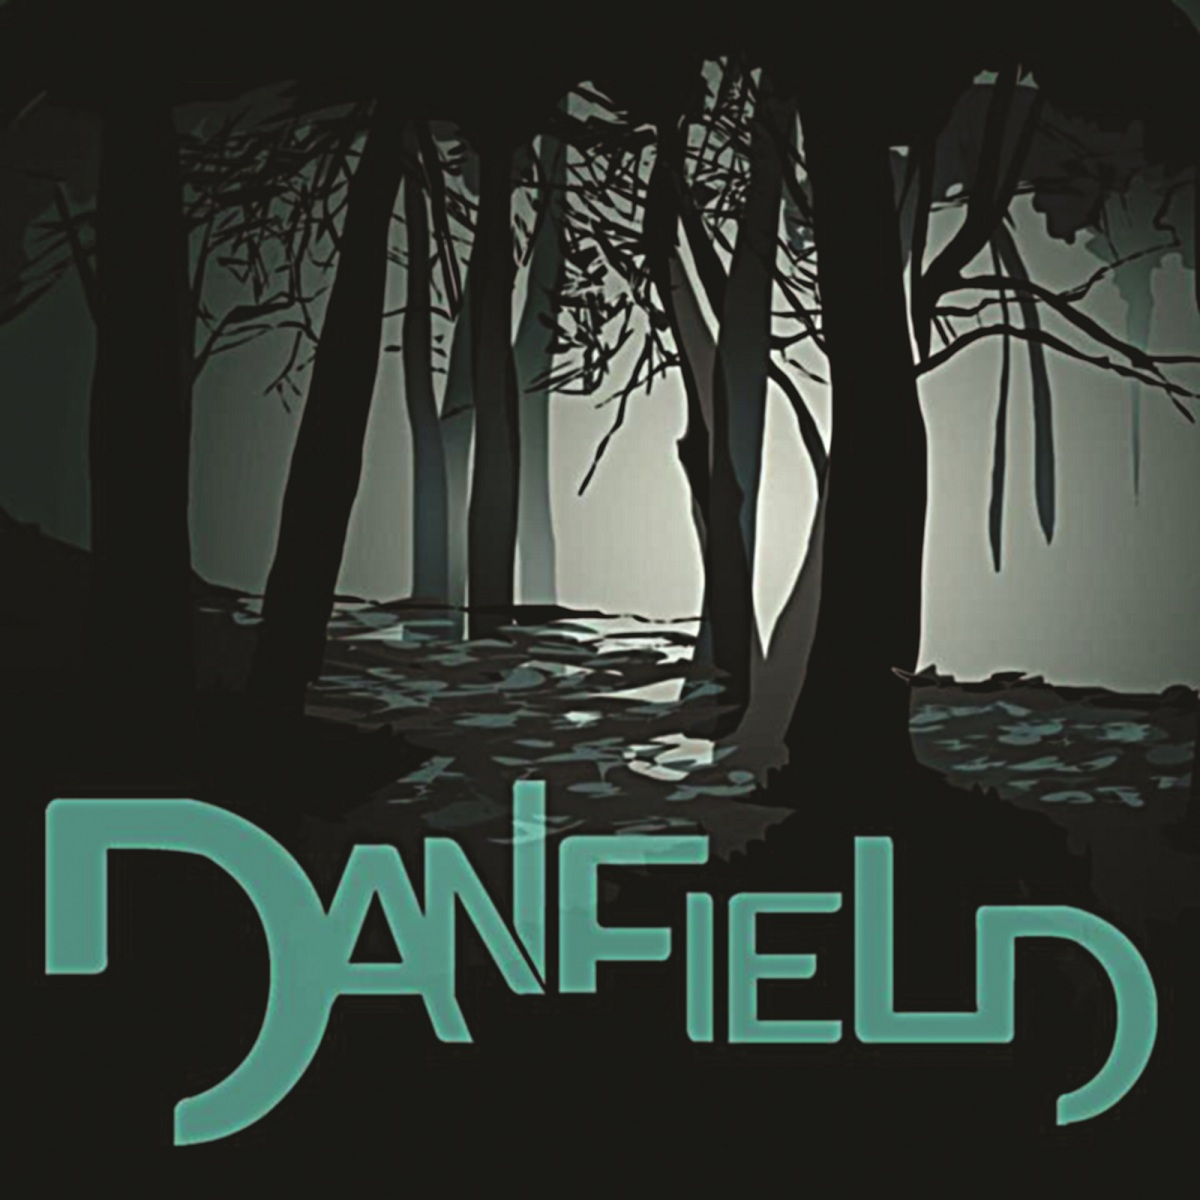 Local band Danfield at work on new EP